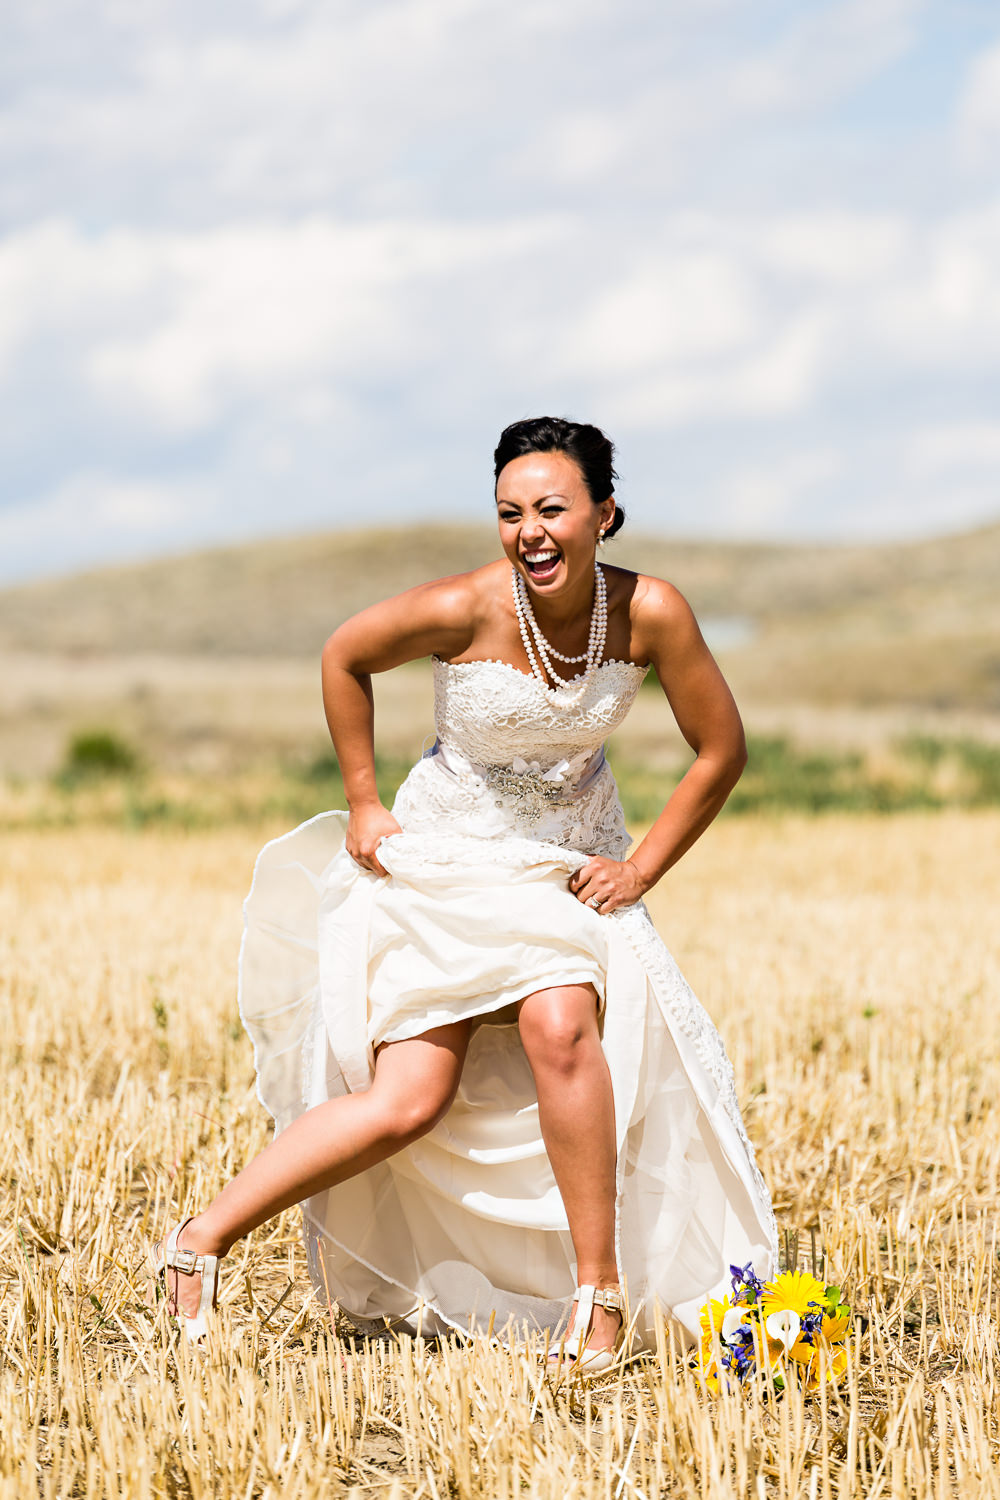 billings-montana-chanceys-wedding-first-look-bride-goofy-laugh.jpg